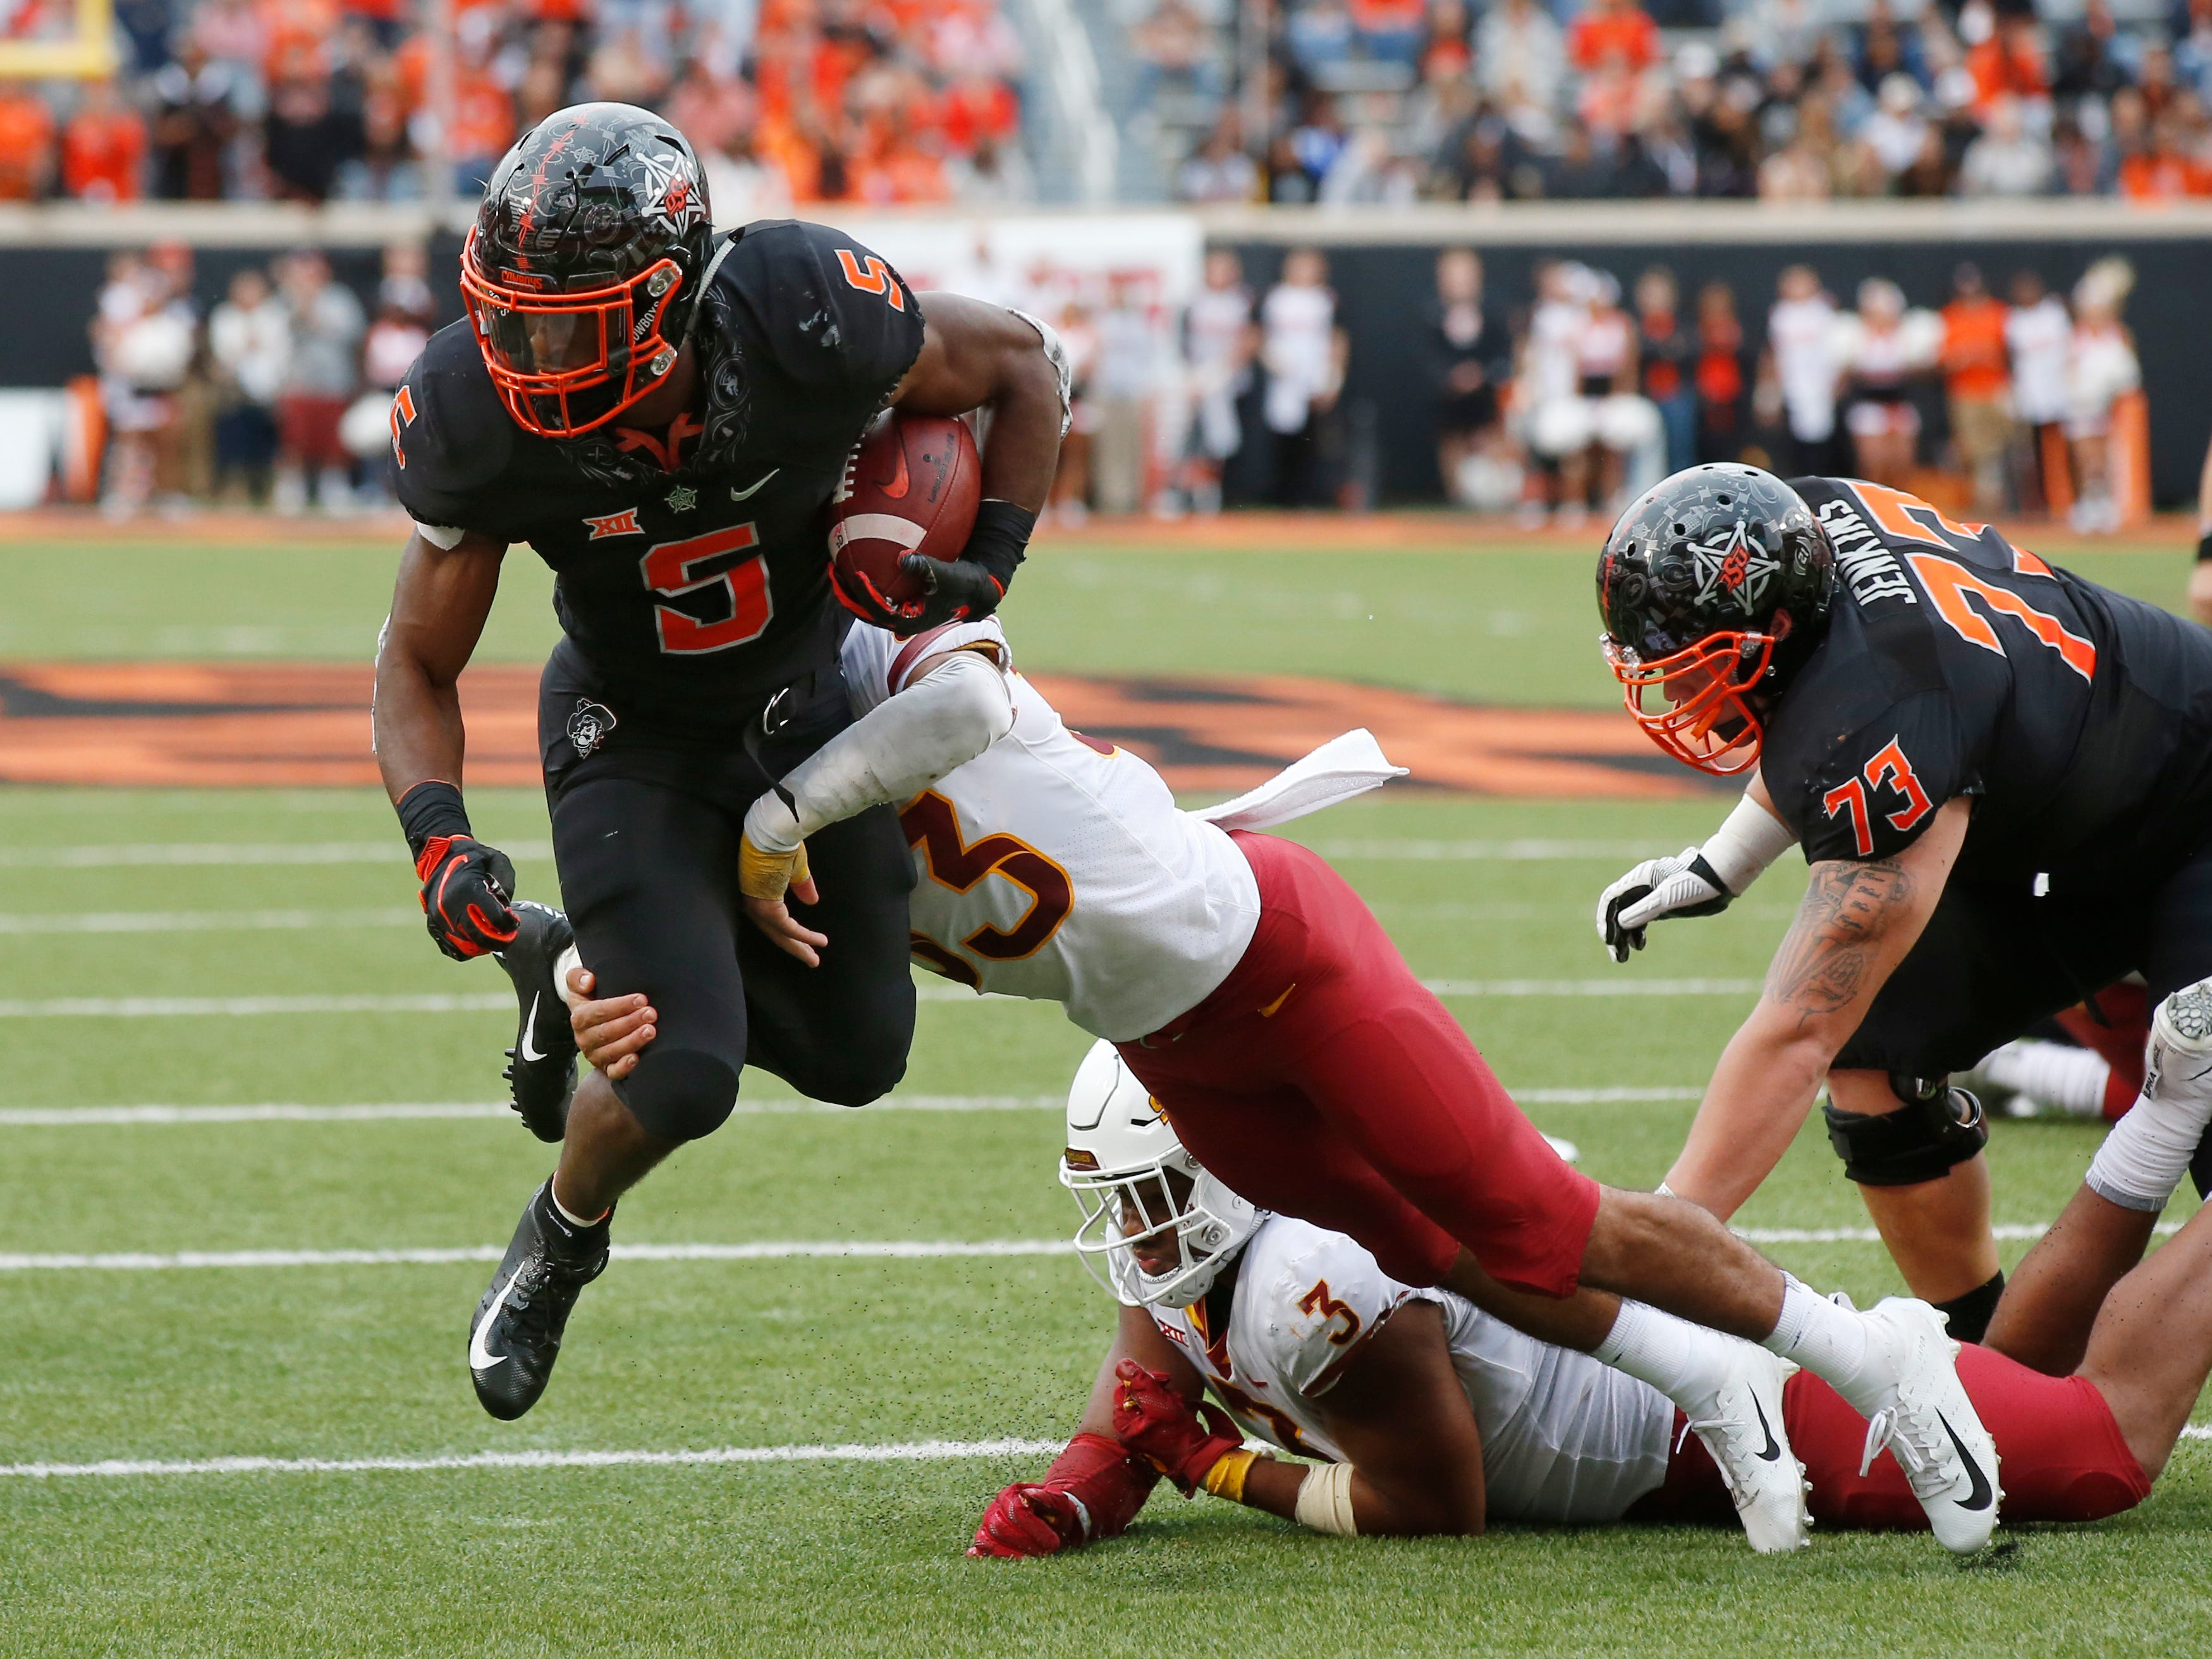 Oklahoma State running back Justice Hill (5) fights a tackle by Iowa State defensive back Braxton Lewis (33) in the second half of an NCAA college football game in Stillwater, Okla., Saturday, Oct. 6, 2018.